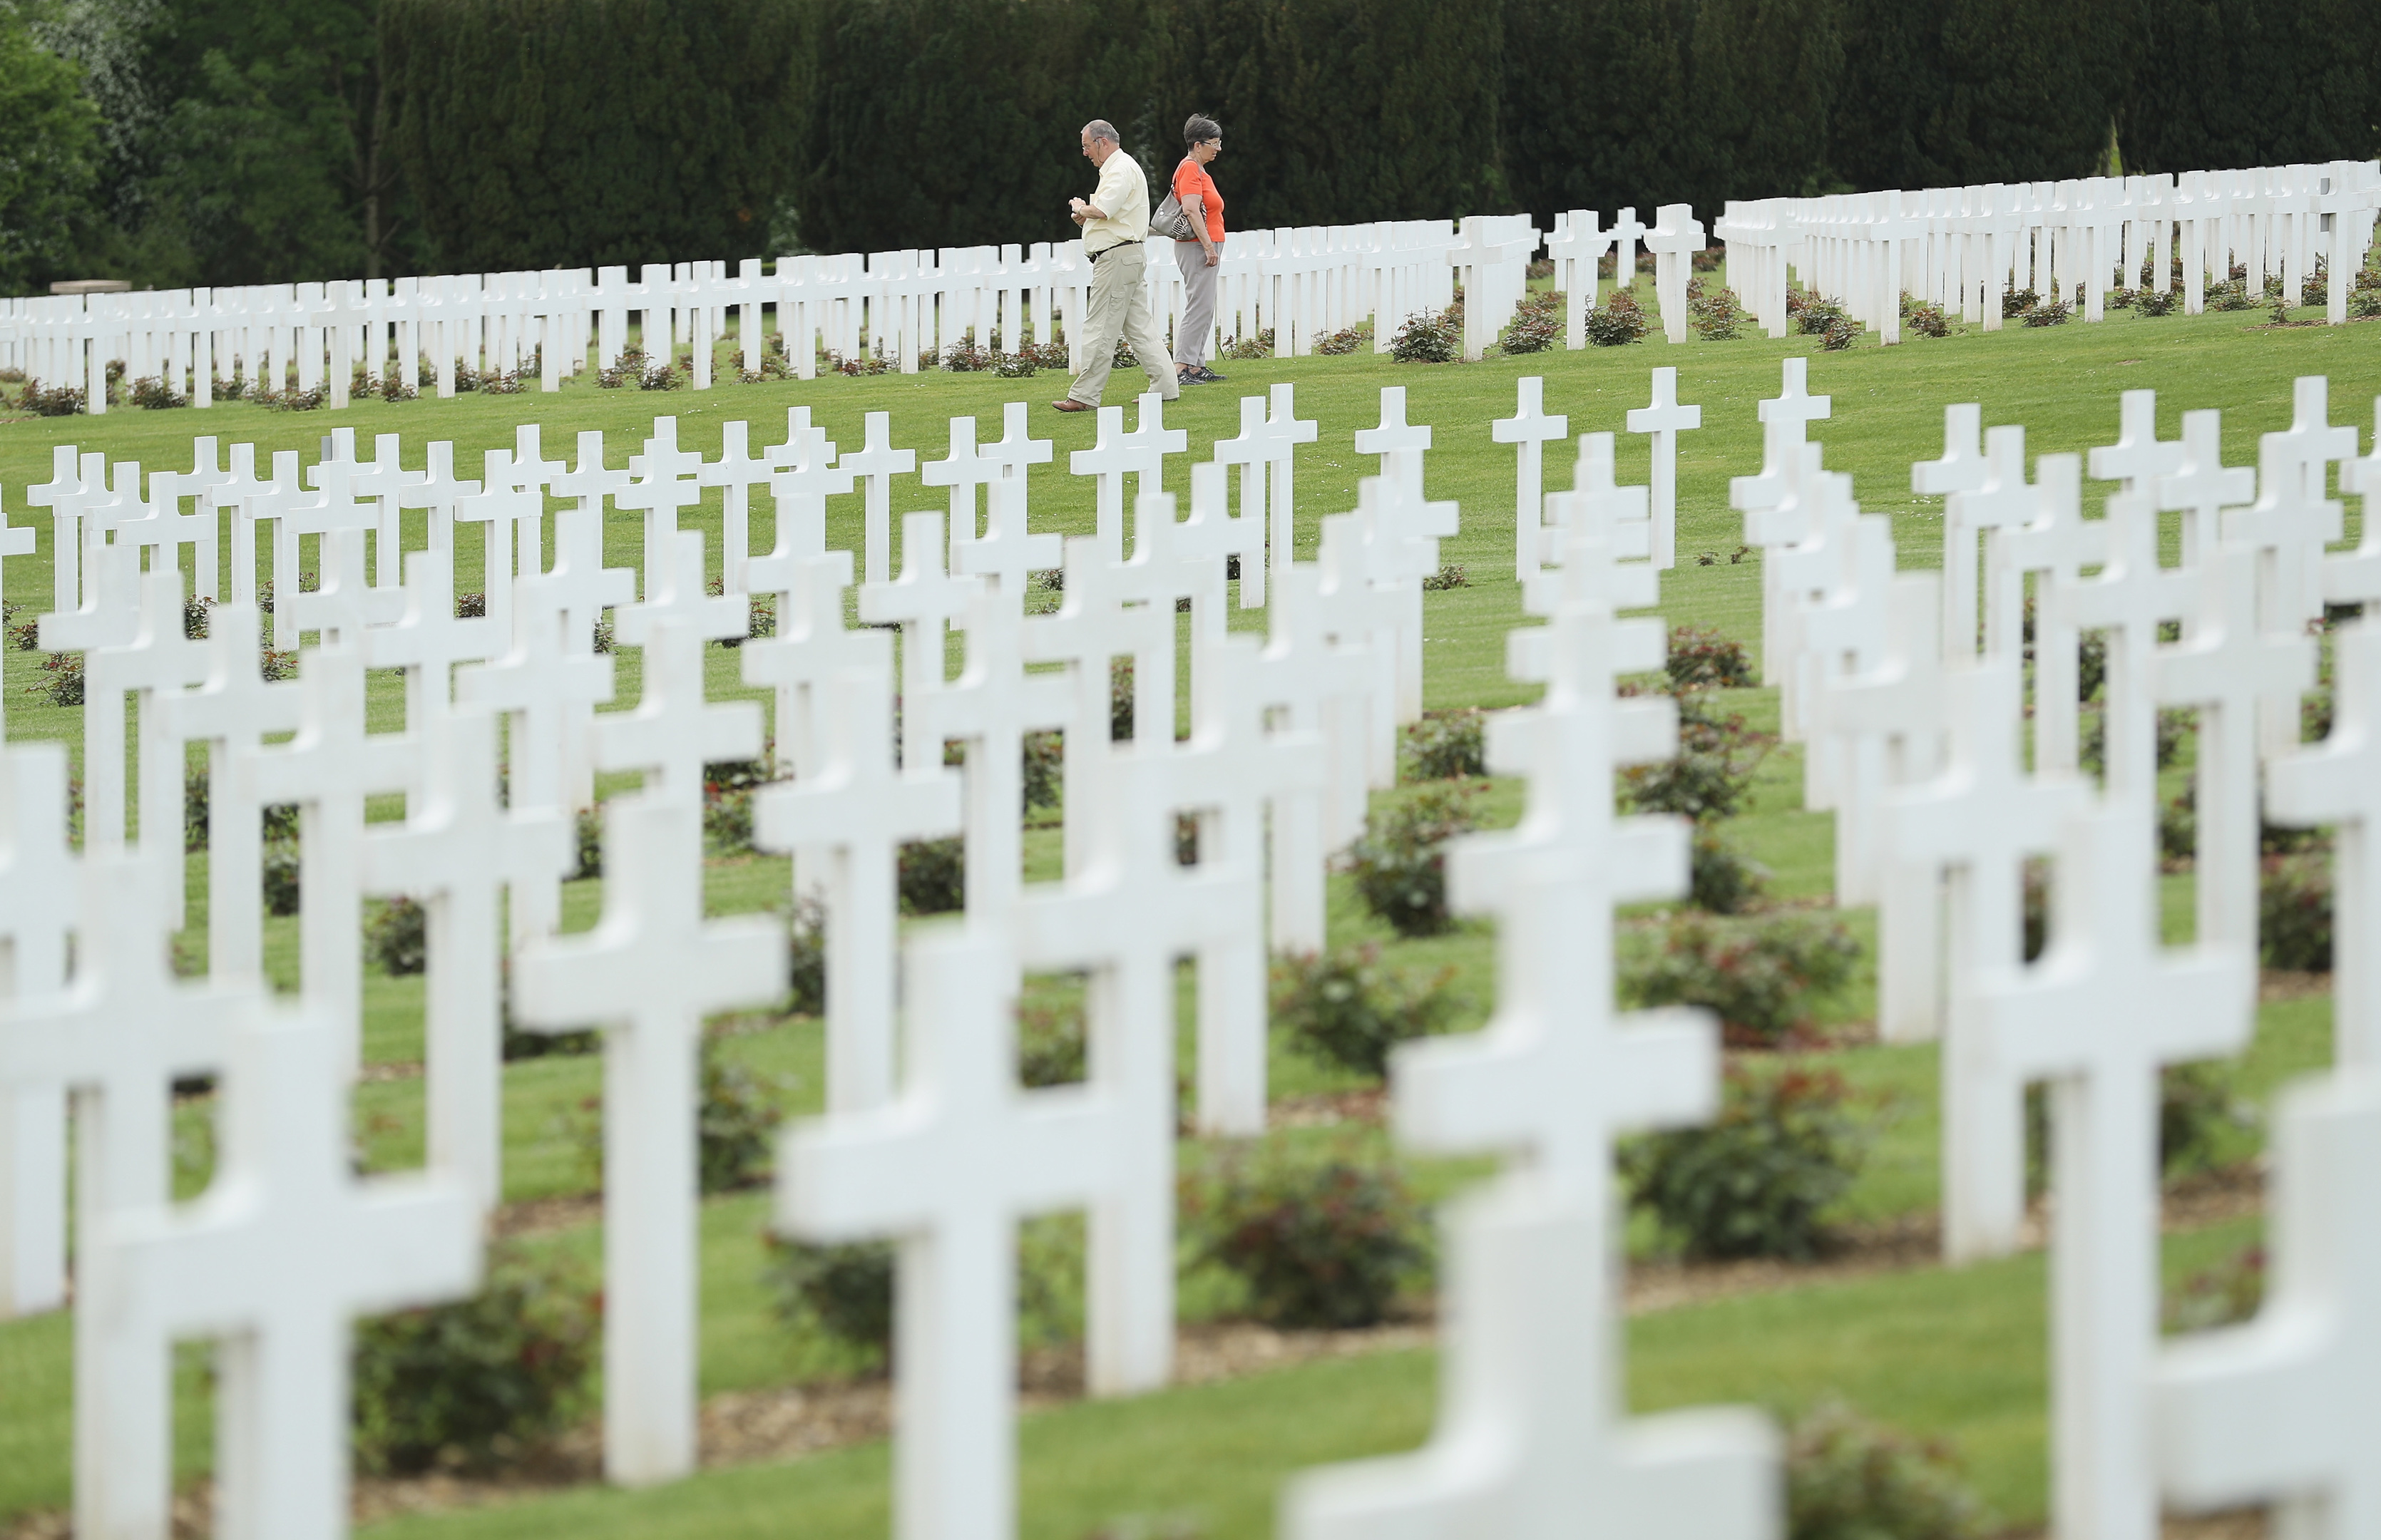 The commission maintains graves at hundreds of locations.